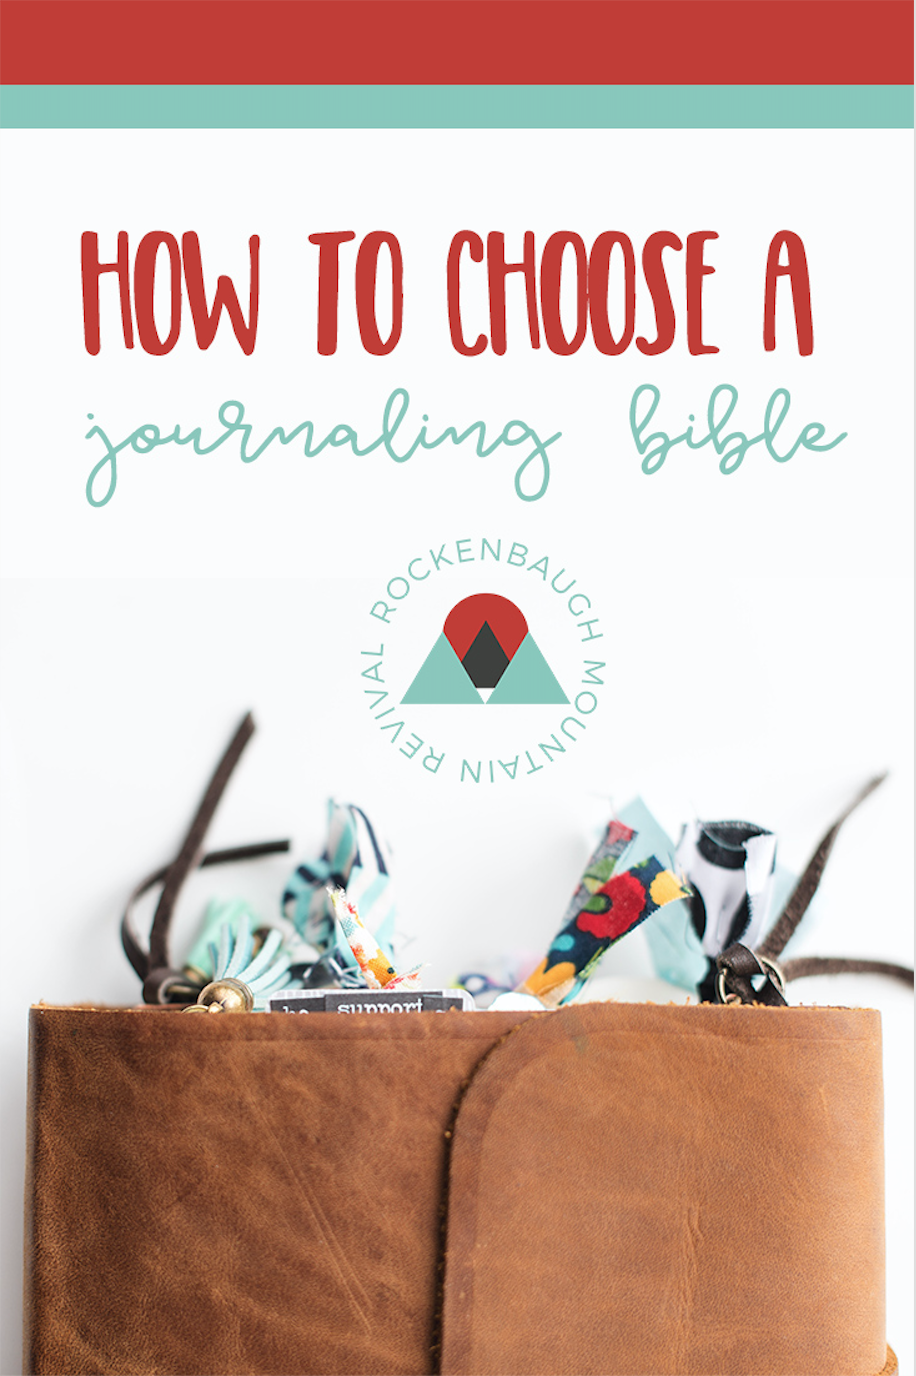 If you want to start bible journaling, but you aren't sure which journaling bible is right for you this blog post provides you with different translation and styles so you can make the right decision for you!!